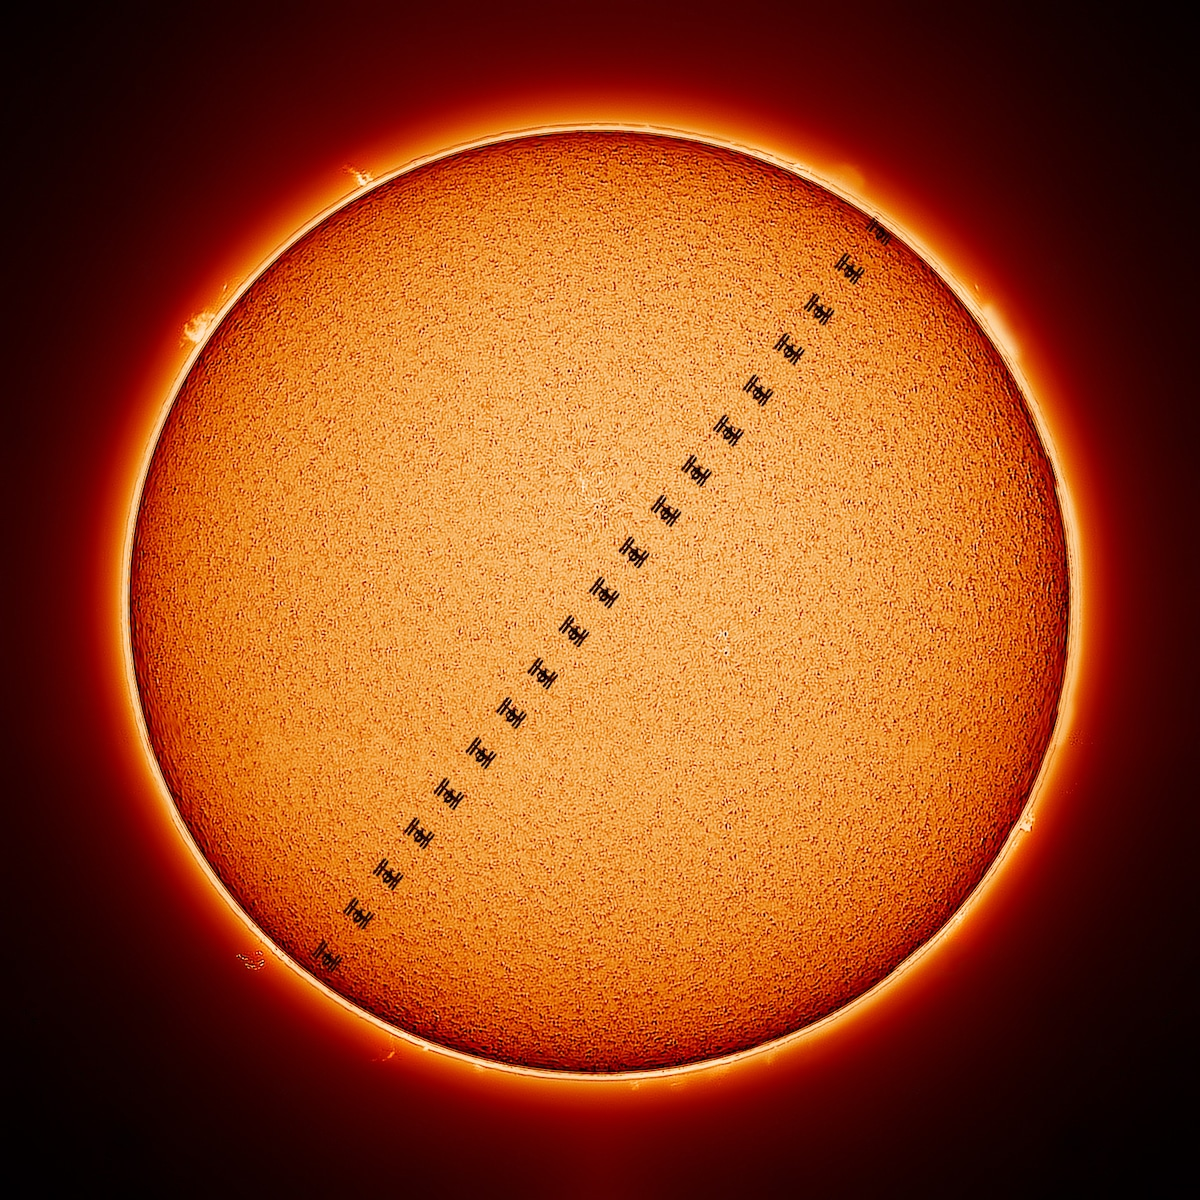 ISS Transiting the Sun par Mack Murdoc